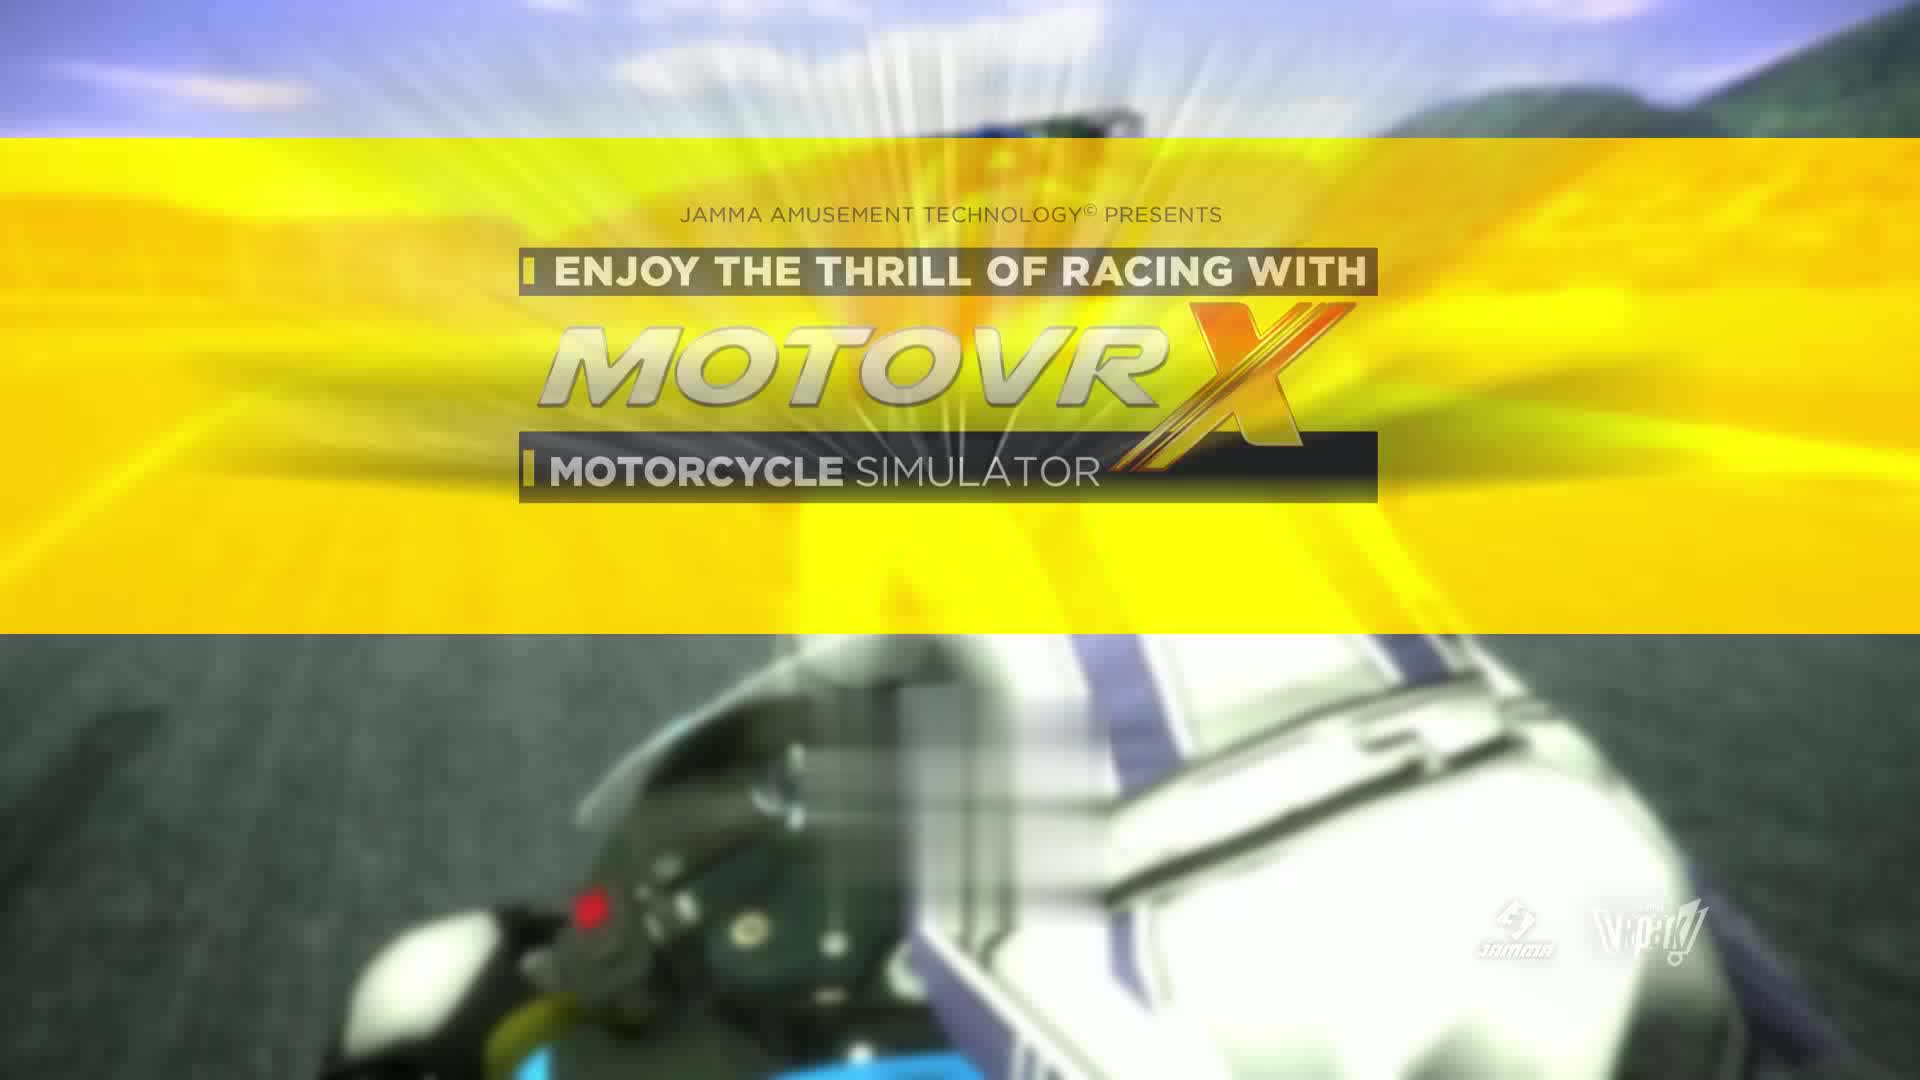 Indoor 4 player vr racing motorcycle driving simulator